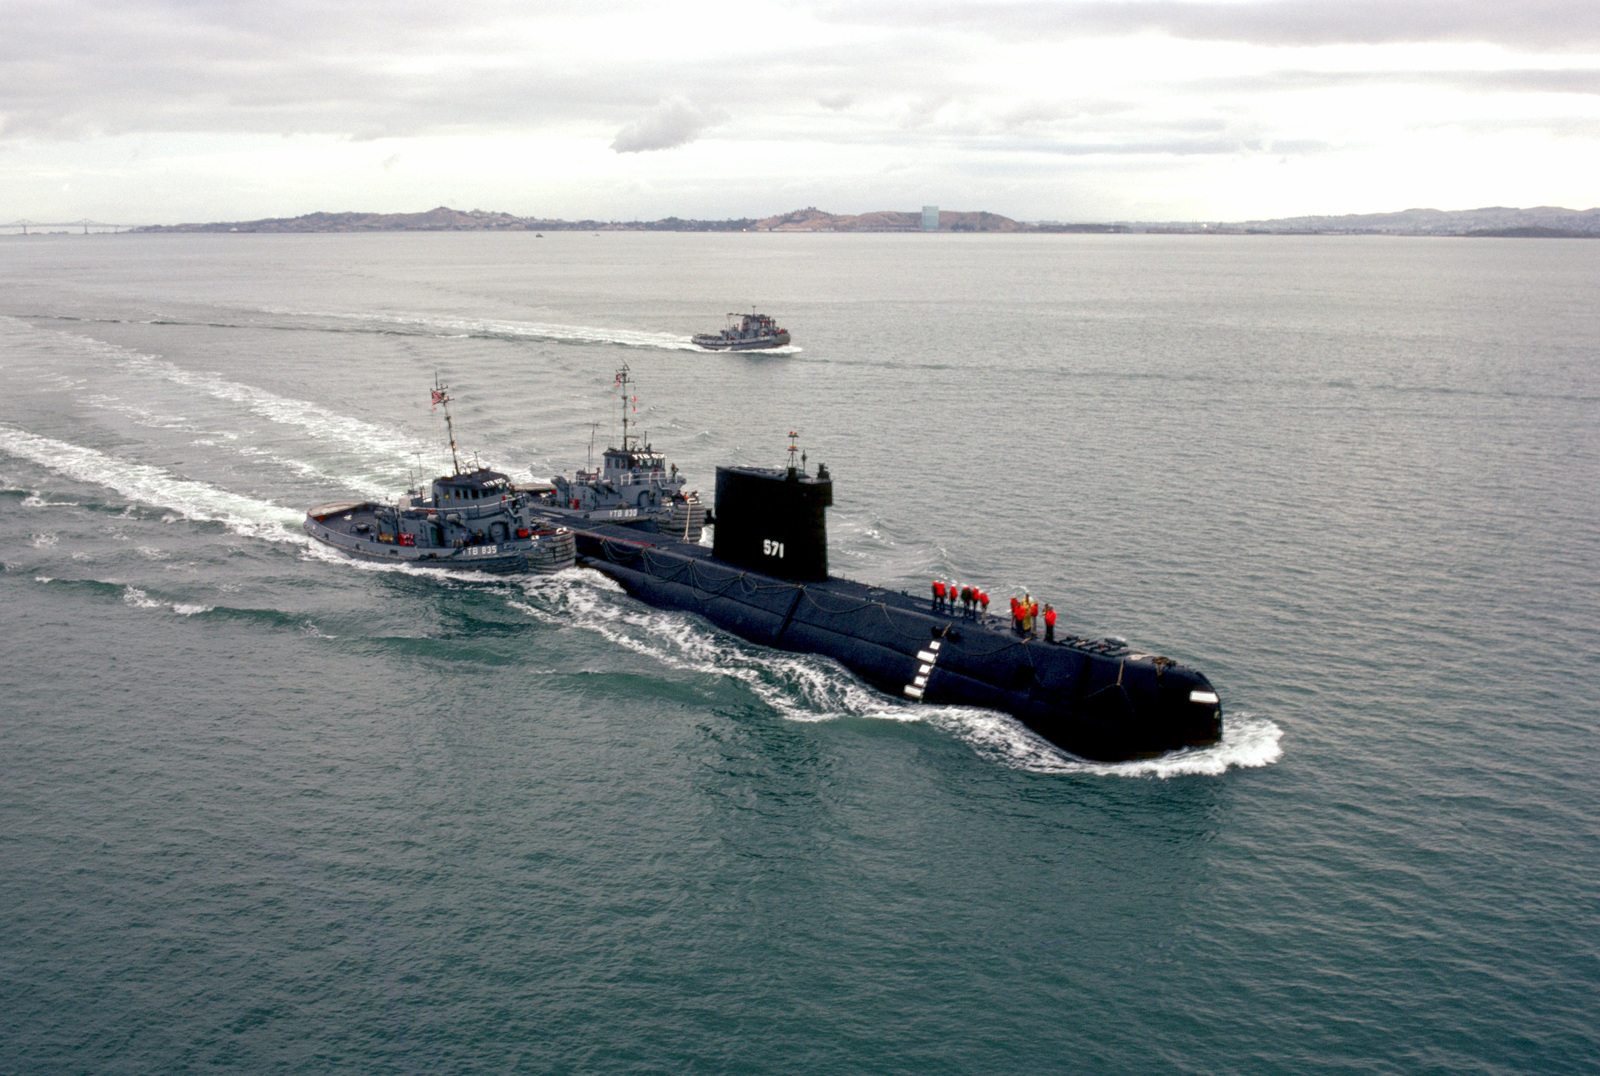 Aerial starboard bow view of the nuclear-powered attack submarine ex